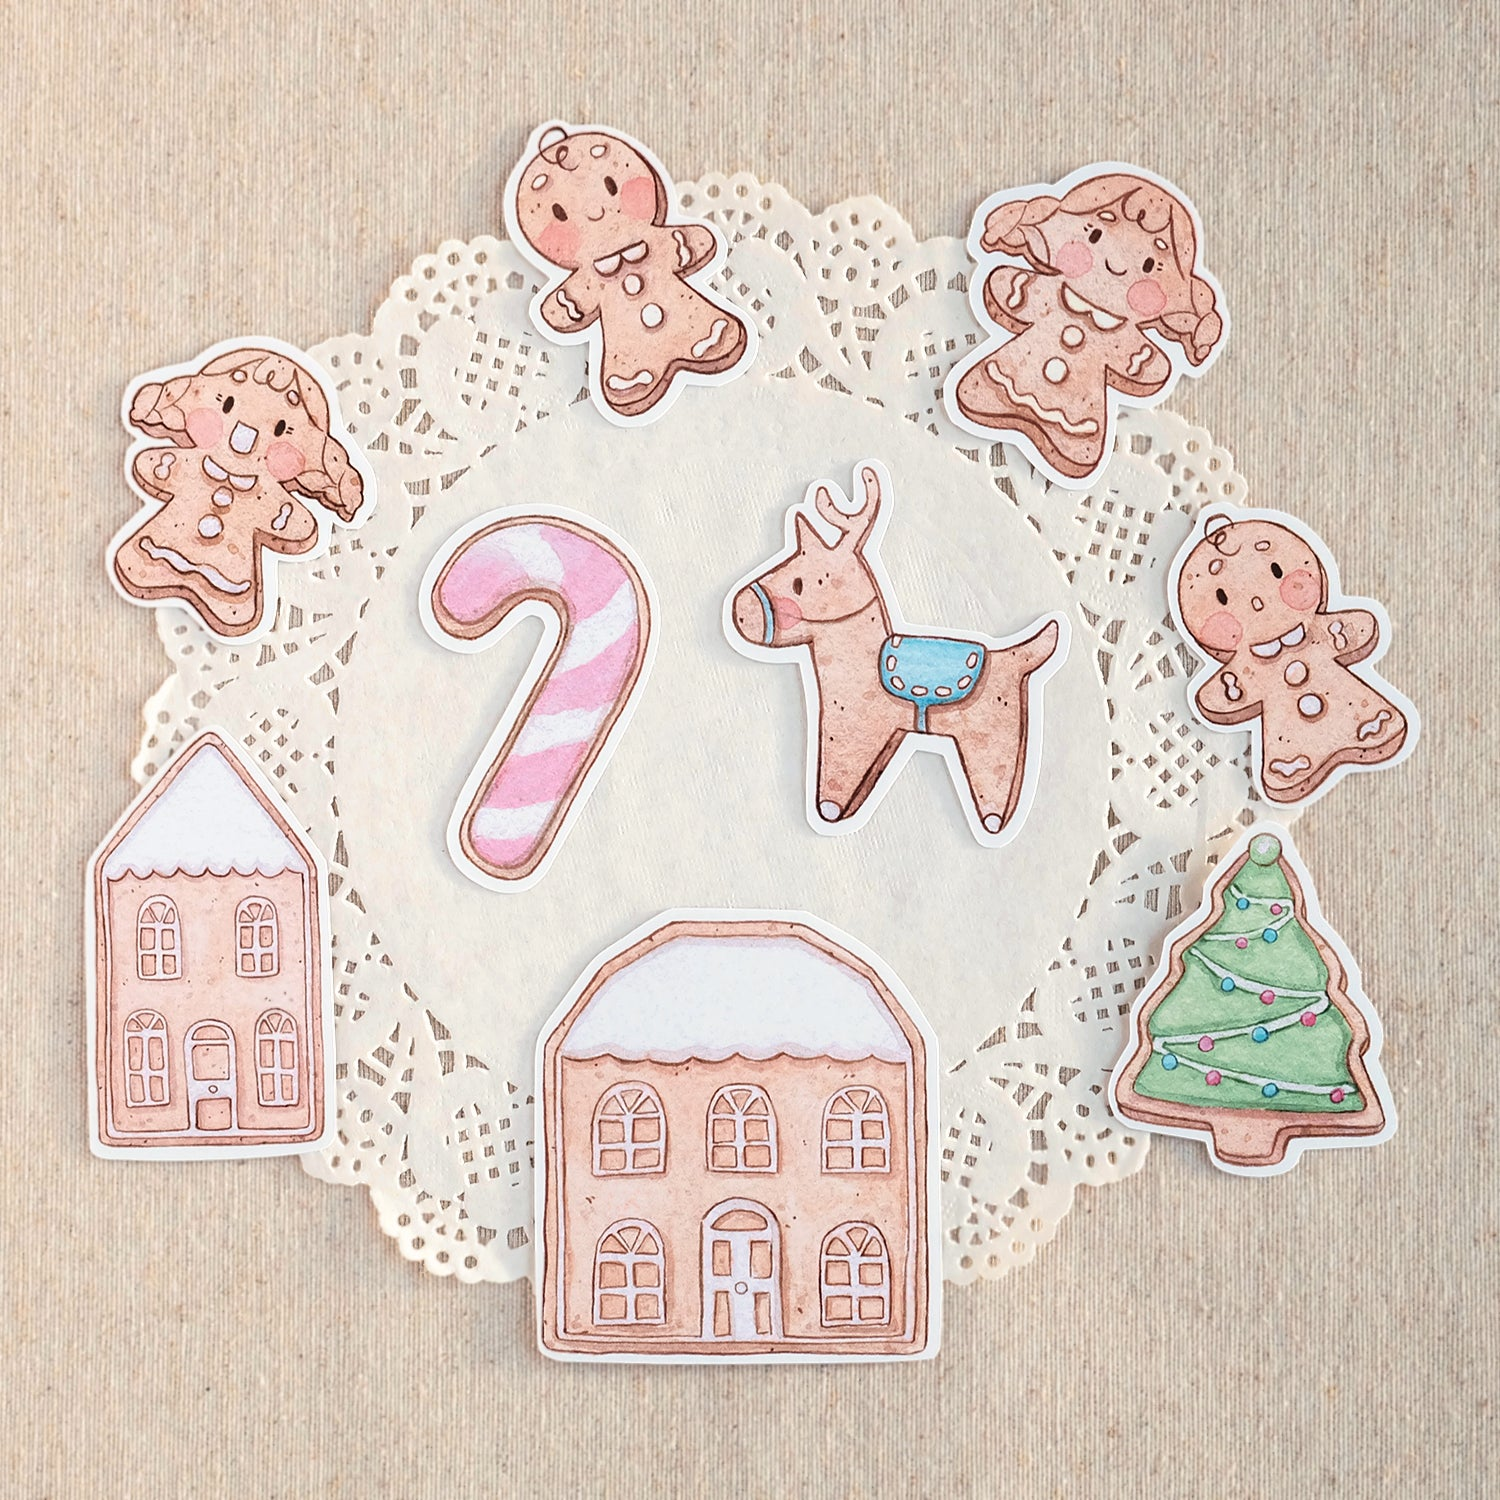 Die Cut Pack 9 pieces Cardboard or Sticker ~ Sweet Christmas